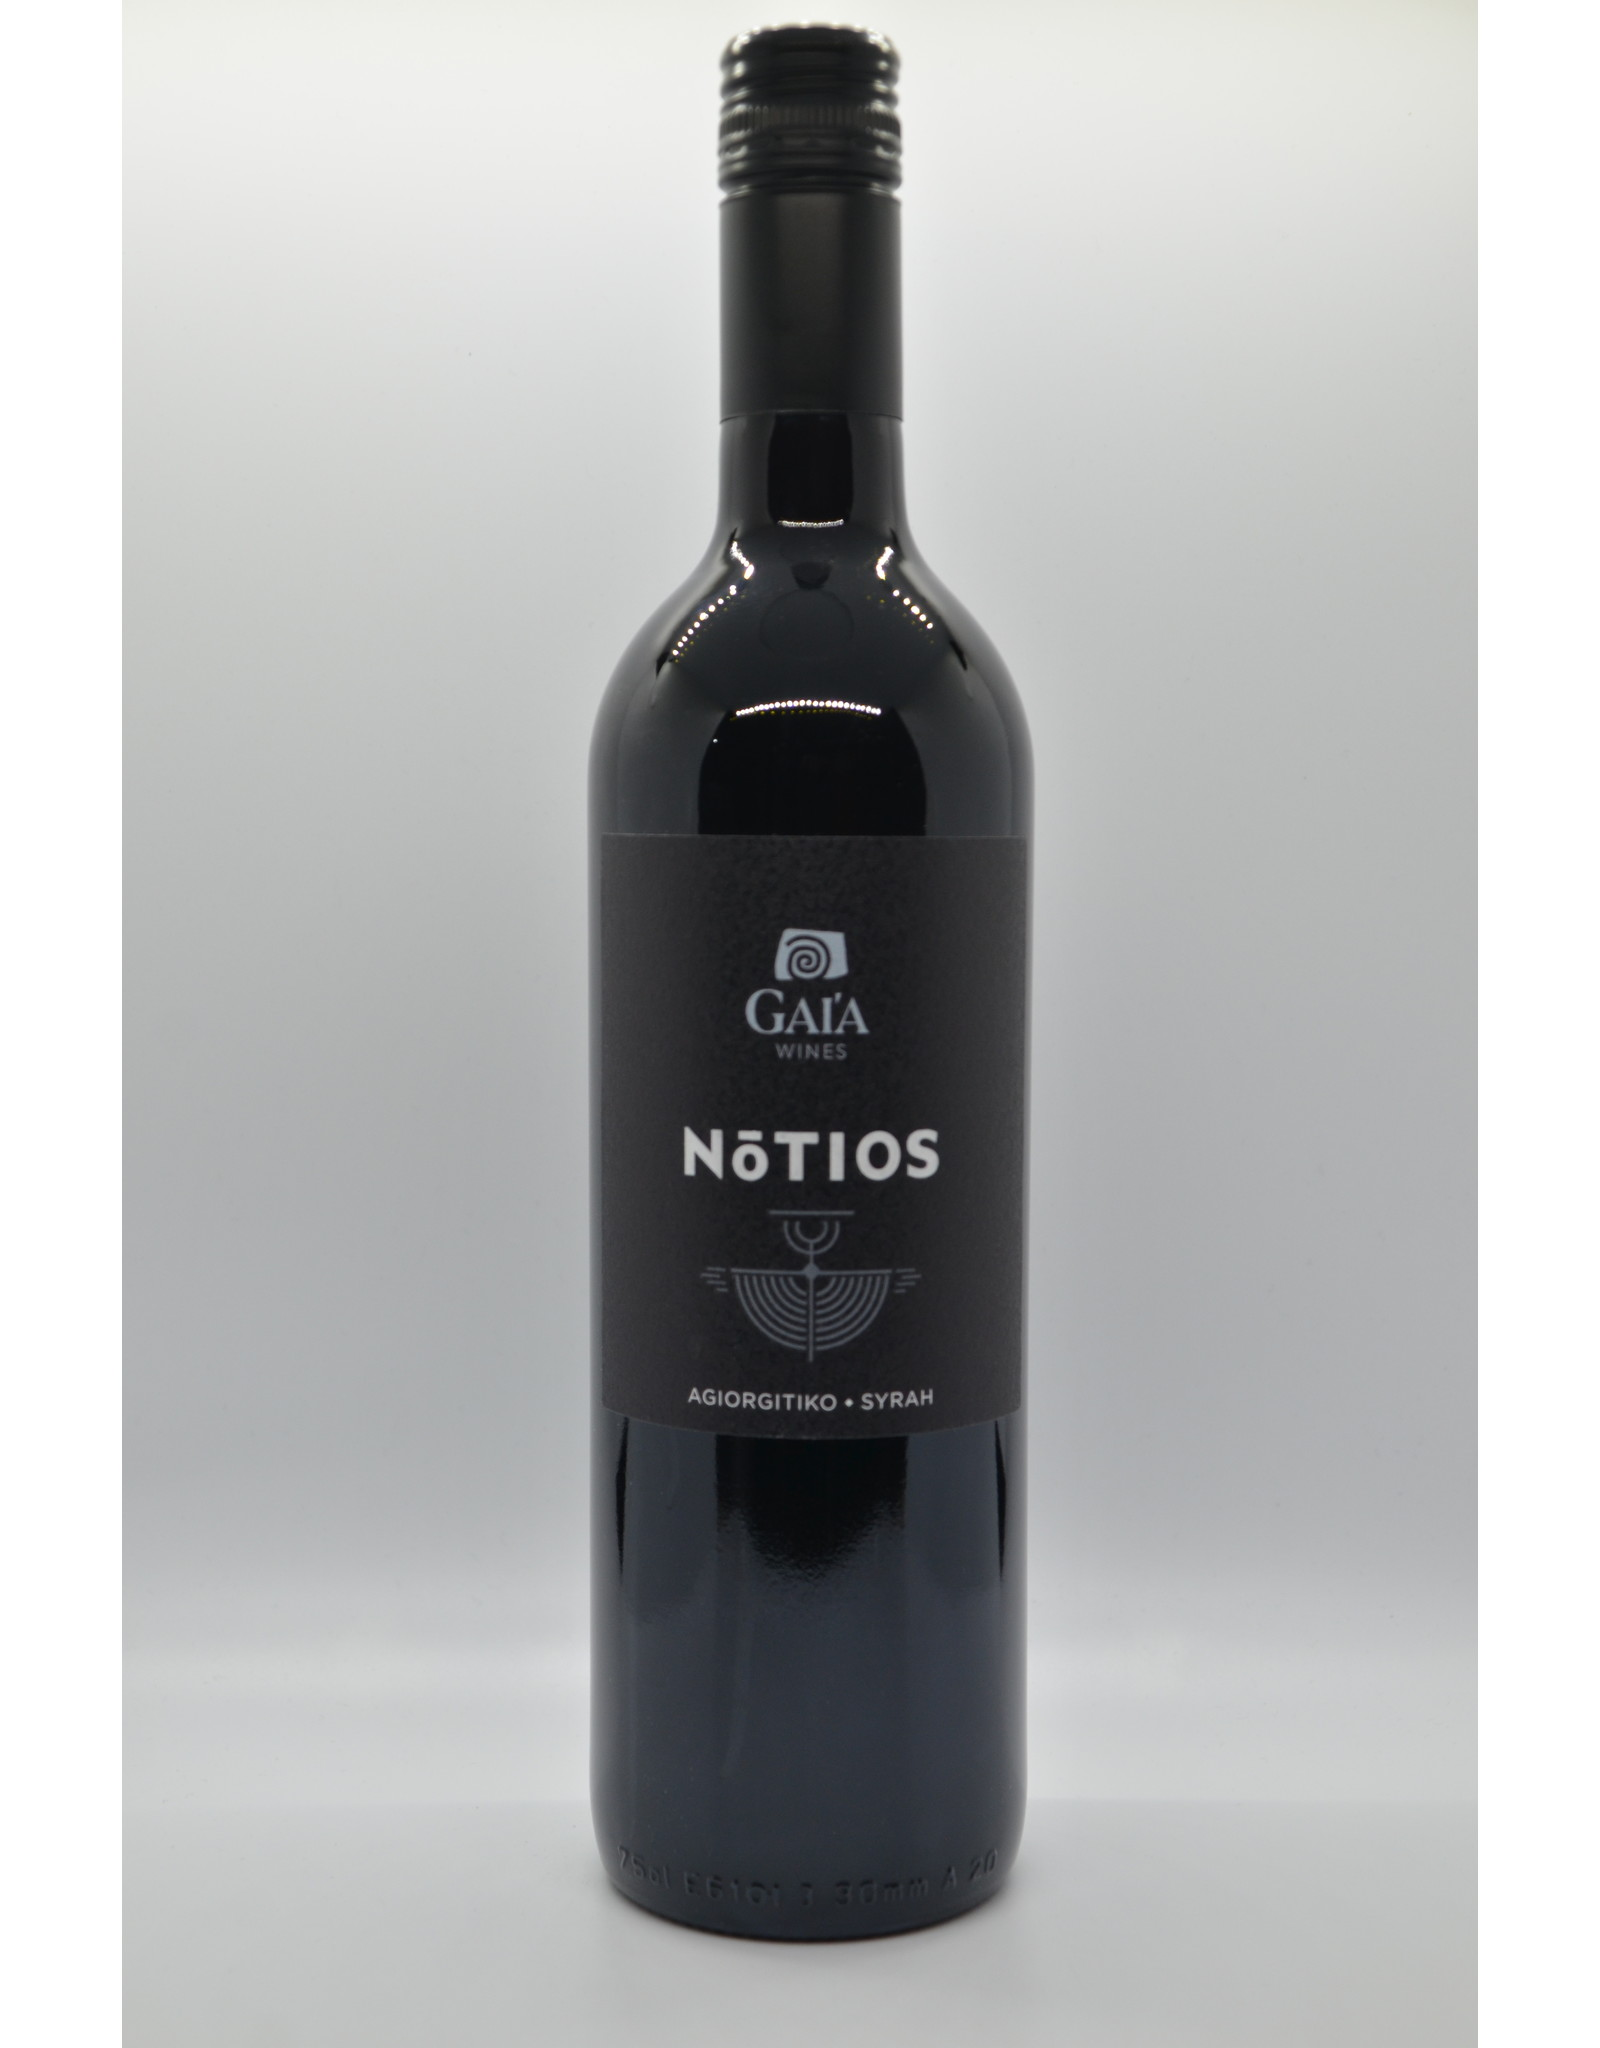 Greece Notios Agiorgitiko & Syrah